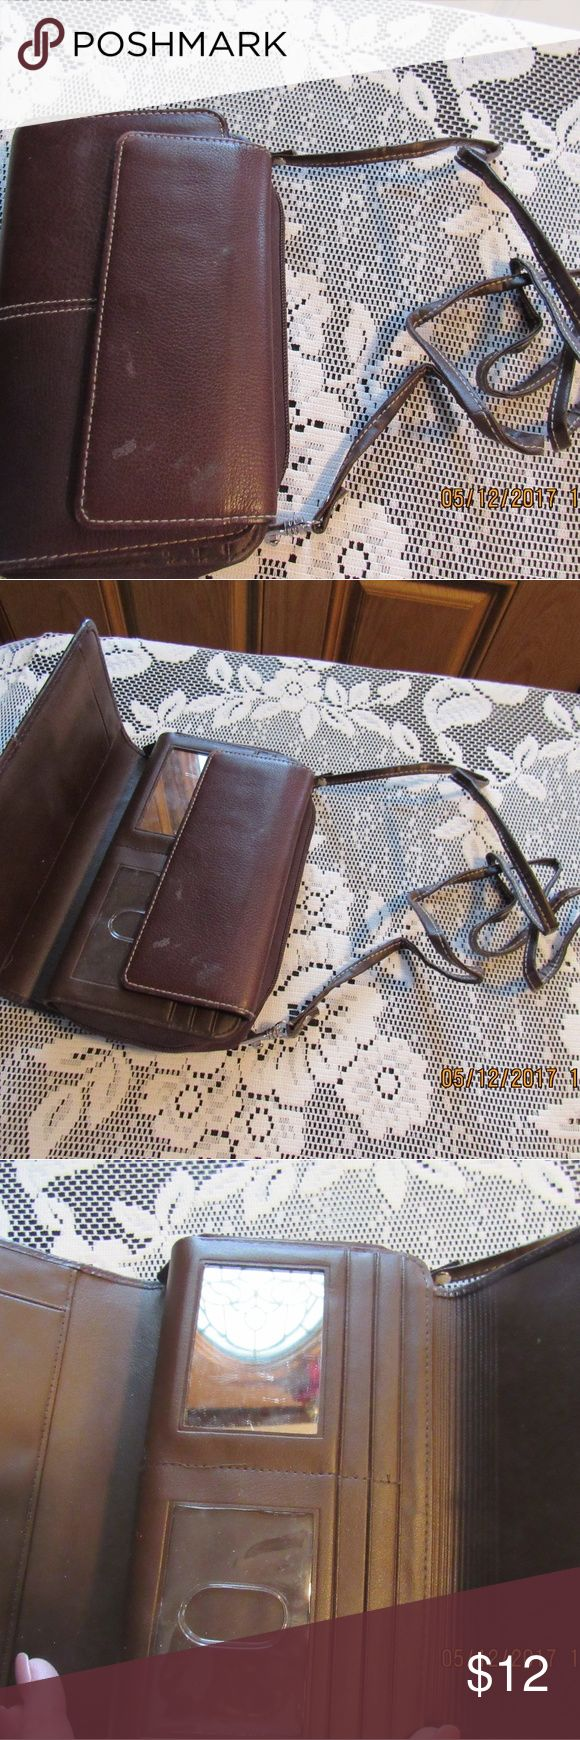 JB307.   Buxton Leather Wallet Brown genuine leather Buxton wallet.  Lots of storage and has strap to wear as crossover.  There are a few marks on front flap but other than that in good used condition. Buxton Bags Wallets